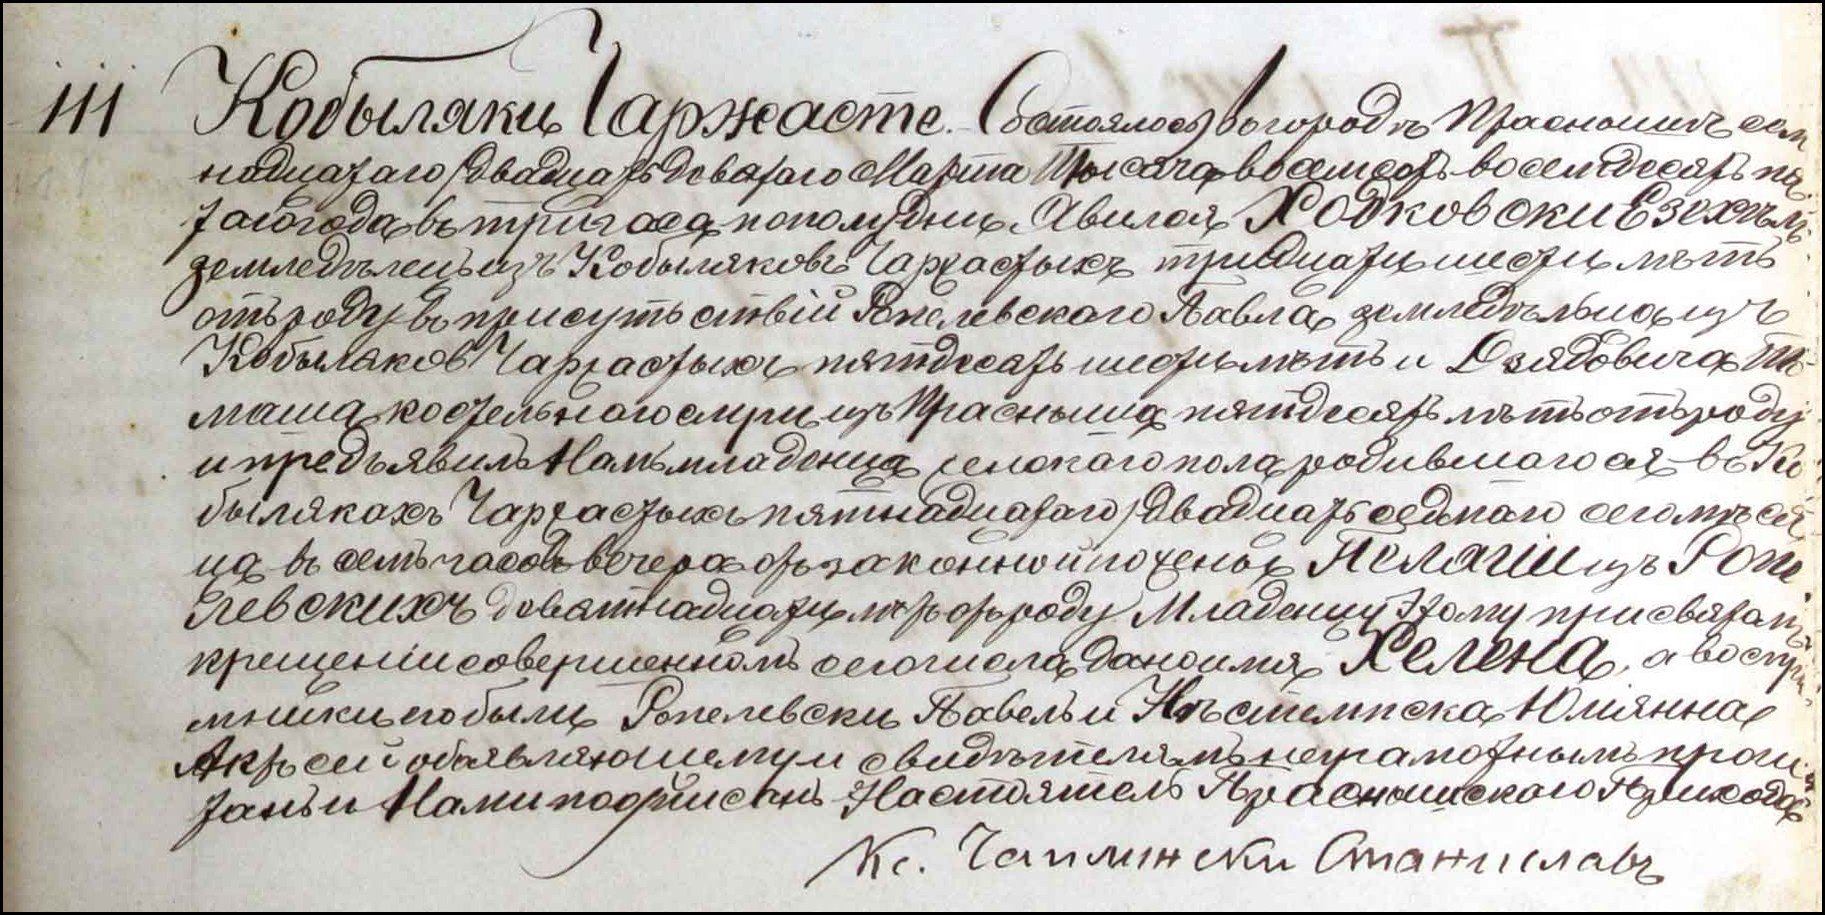 Birth and Baptismal Record for Helena Chodkowska - 1885